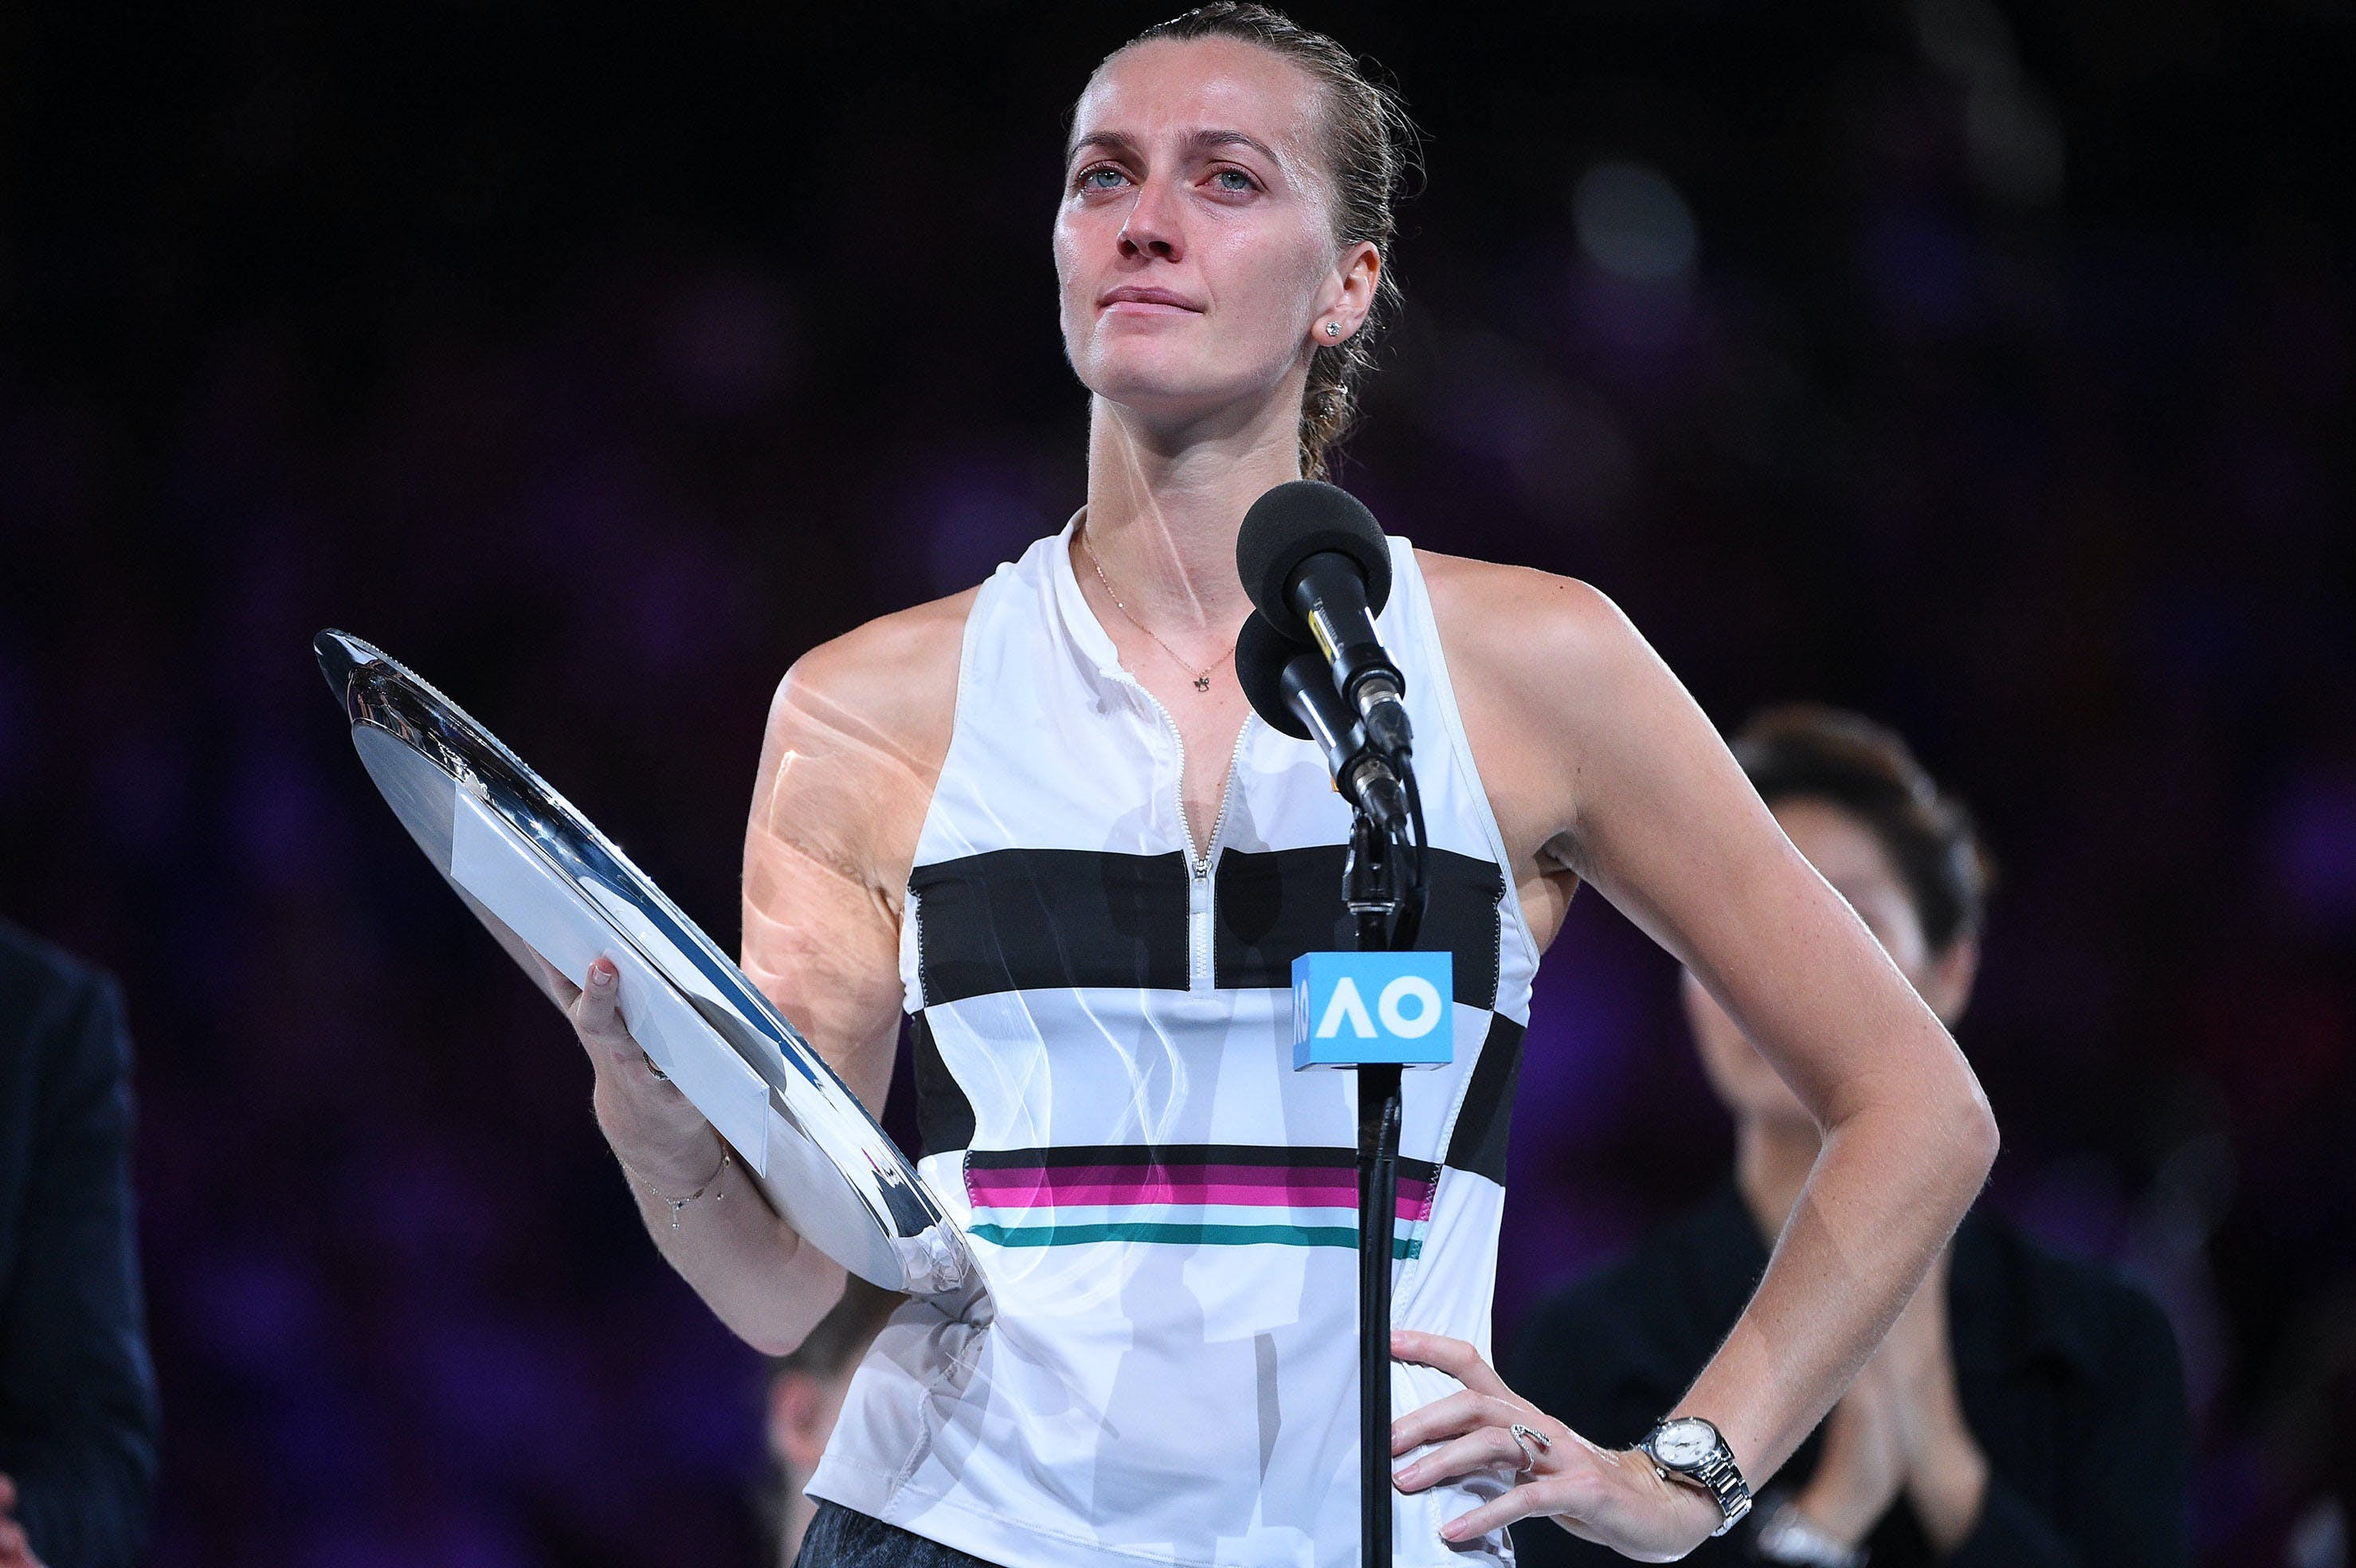 Petra Kvitova in tears during her specch at the trophy prestentation of the 2019 Australian Open.